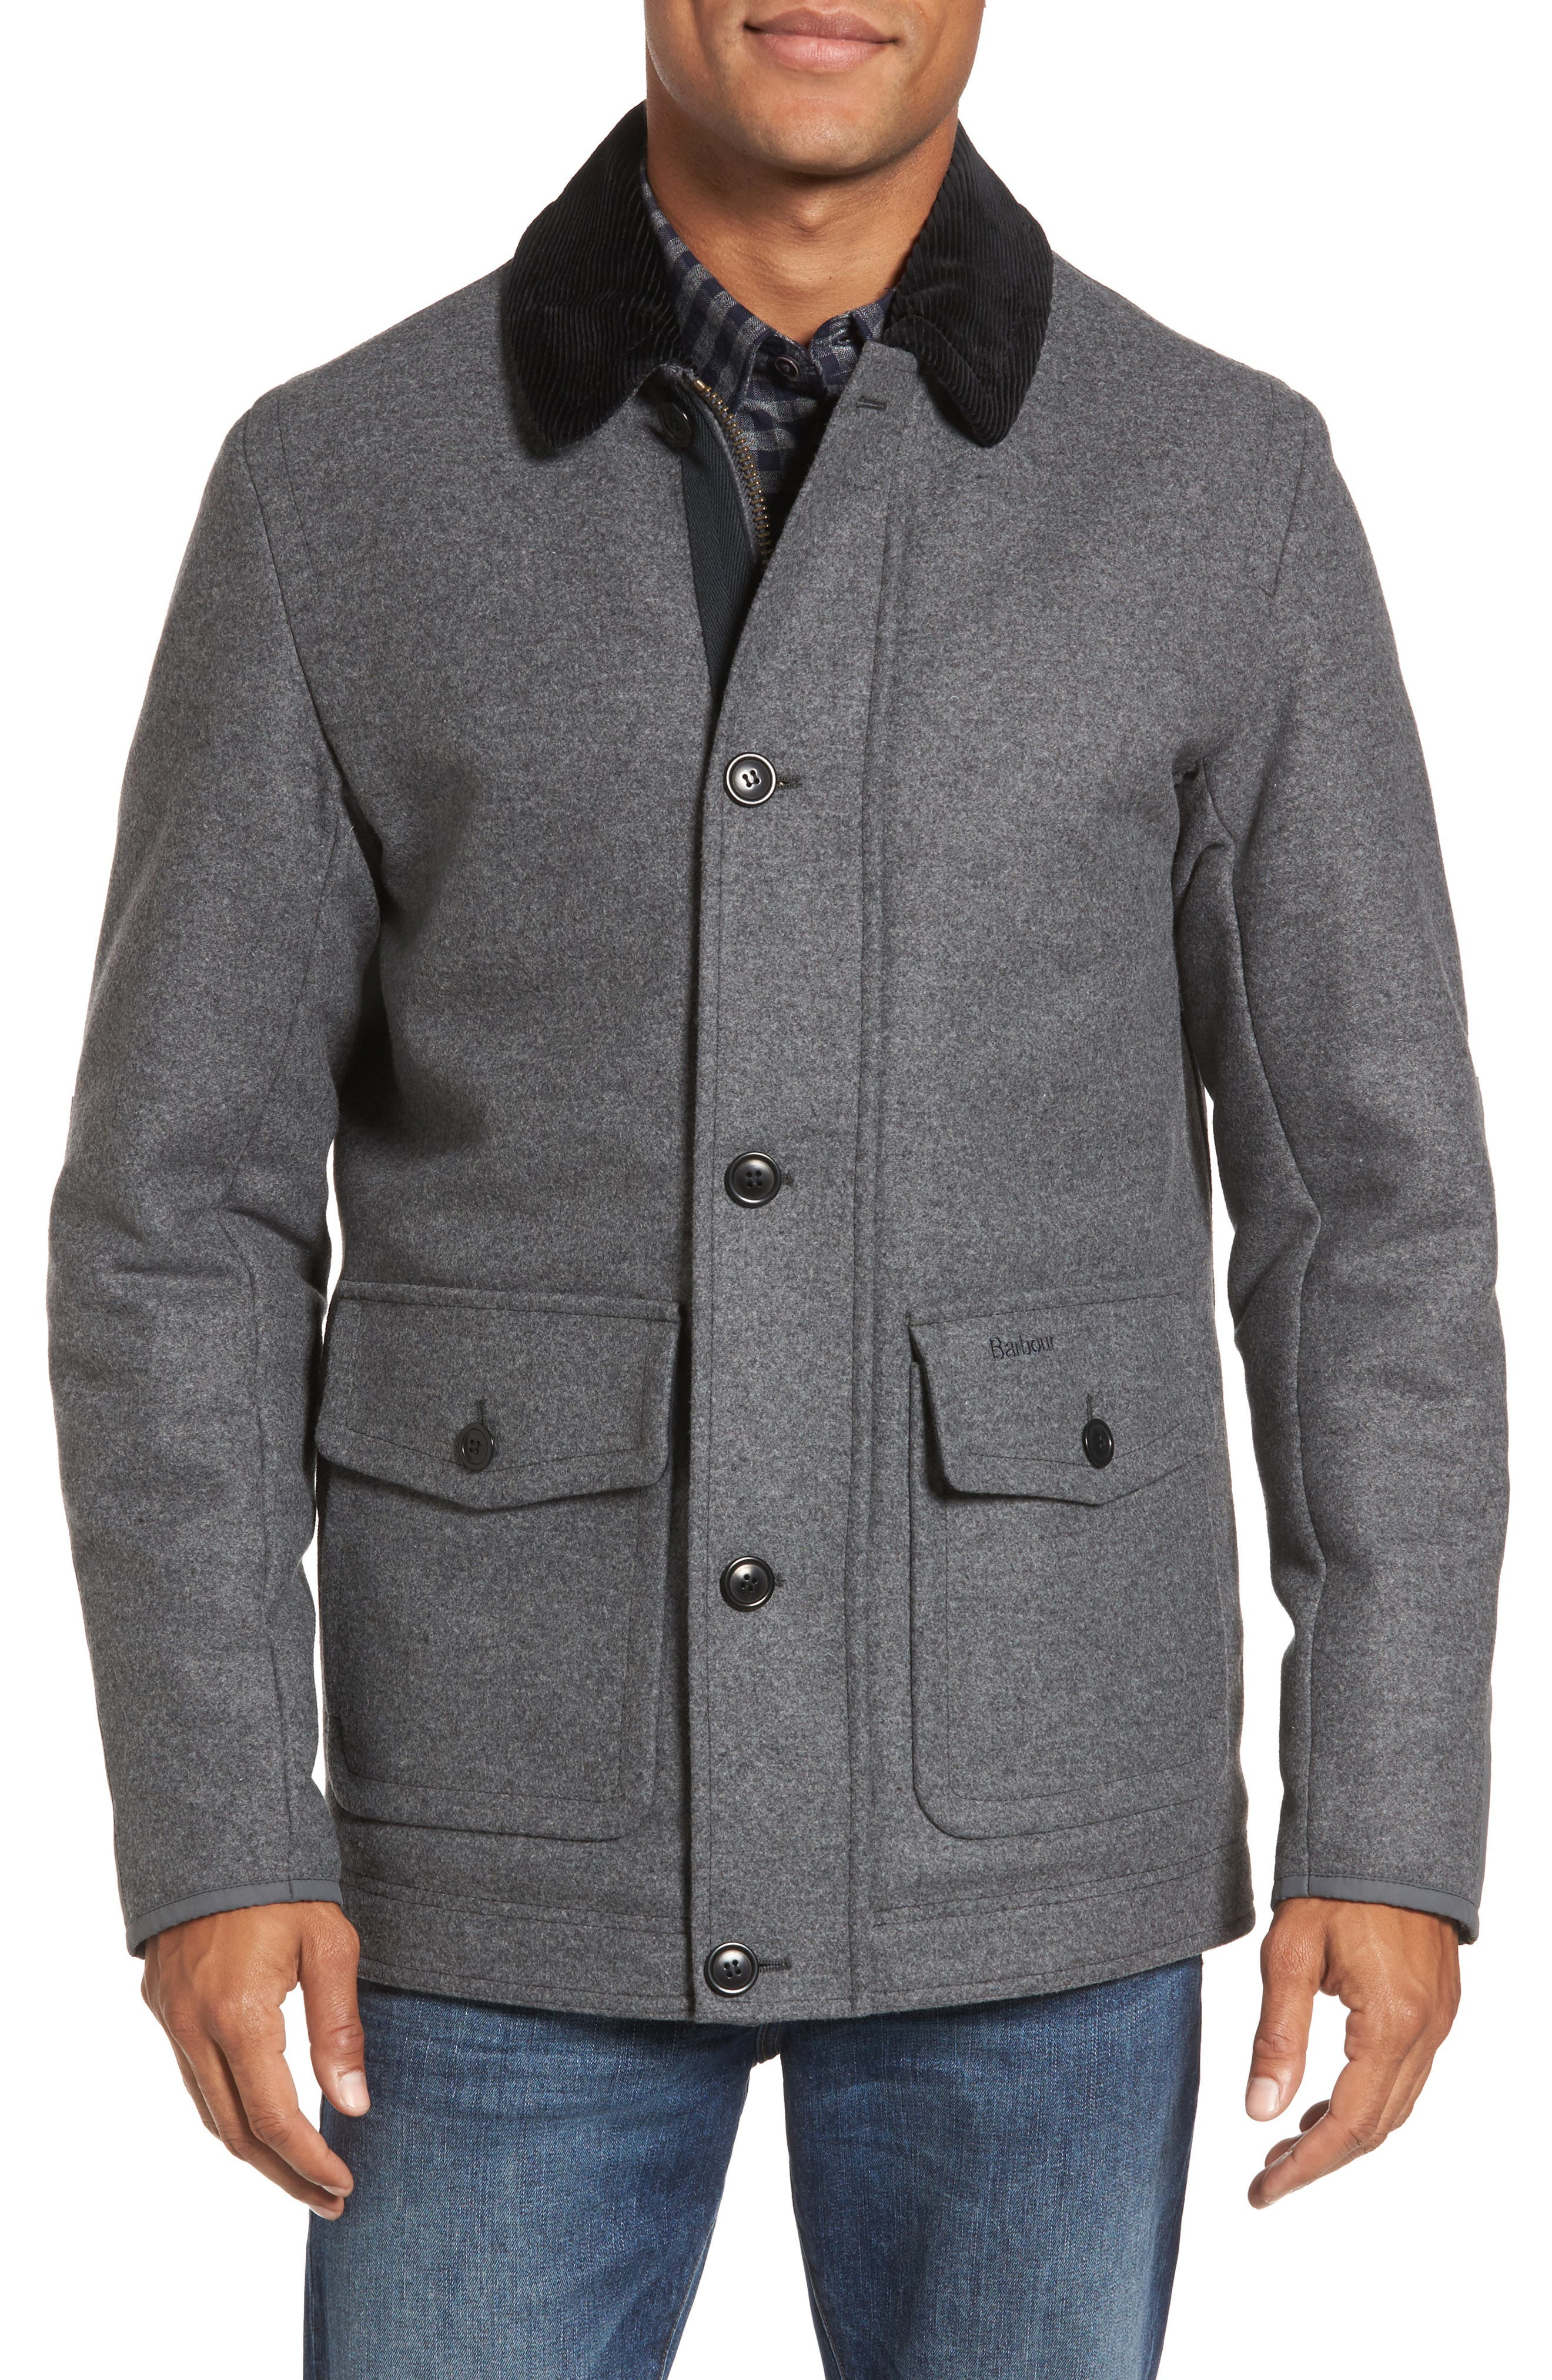 Chingle Wool Blend Deck Jacket,                             Alternate thumbnail 4, color,                             Grey